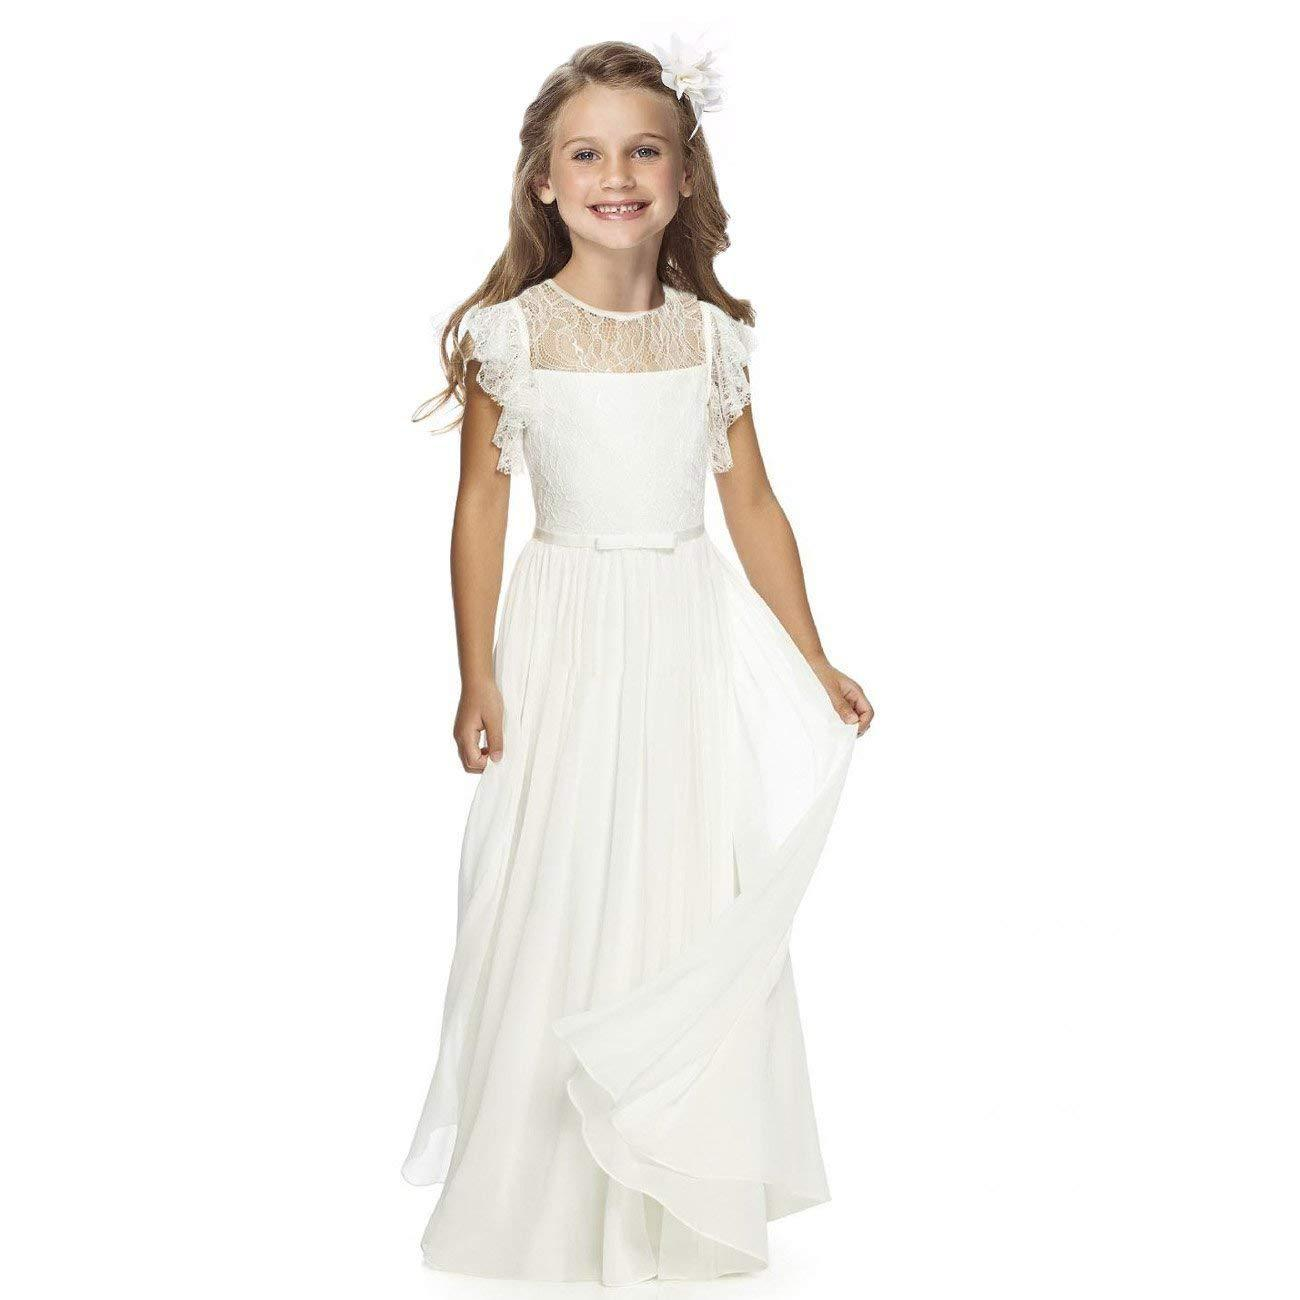 Kids Wedding-Clothing Princess-Dress Chiffon Best-Party Girl White Fashion Children's title=